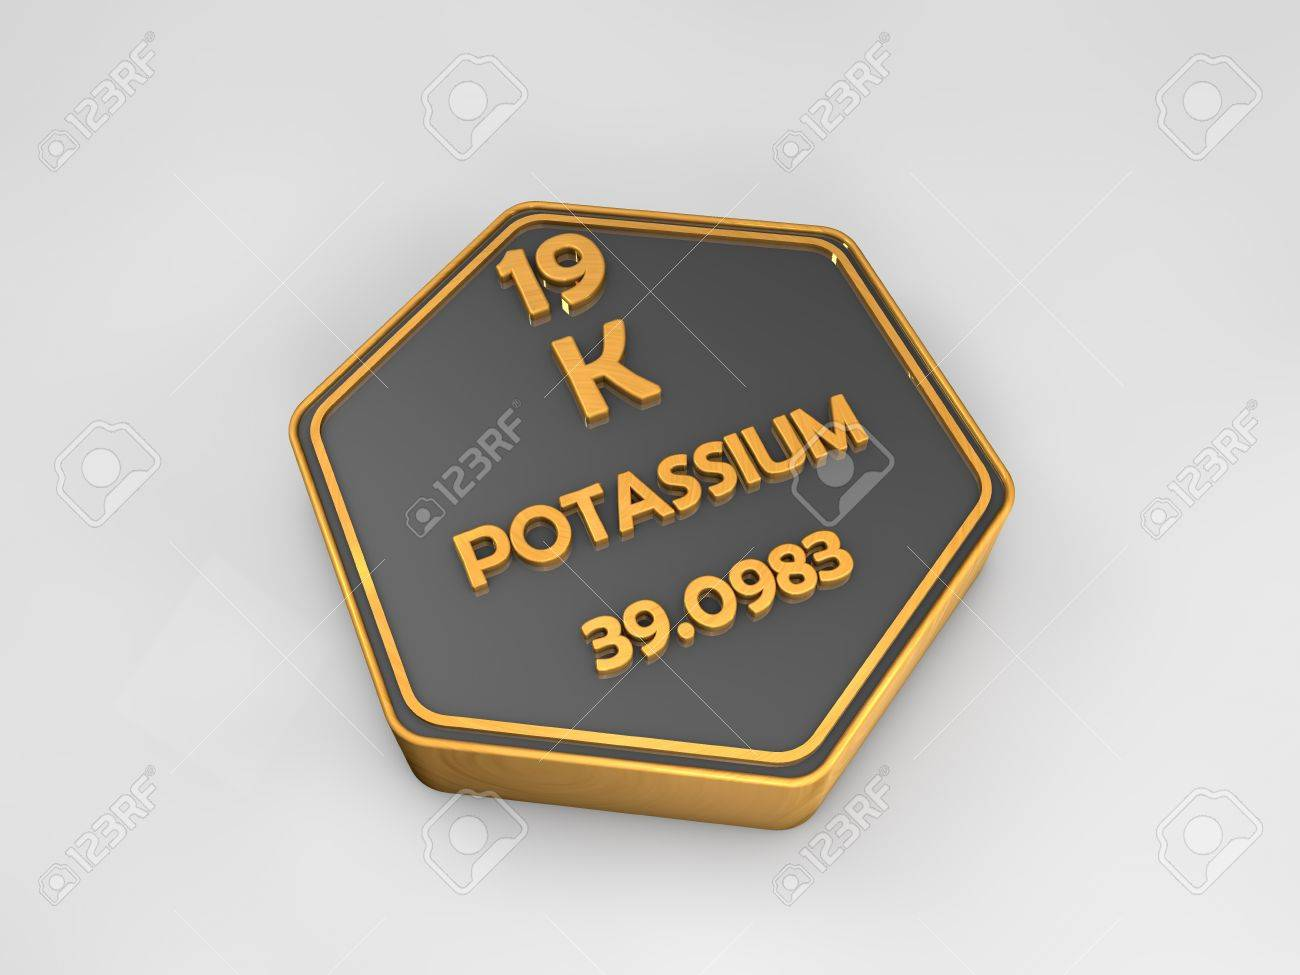 Potassium K Chemical Element Periodic Table Hexagonal Shape